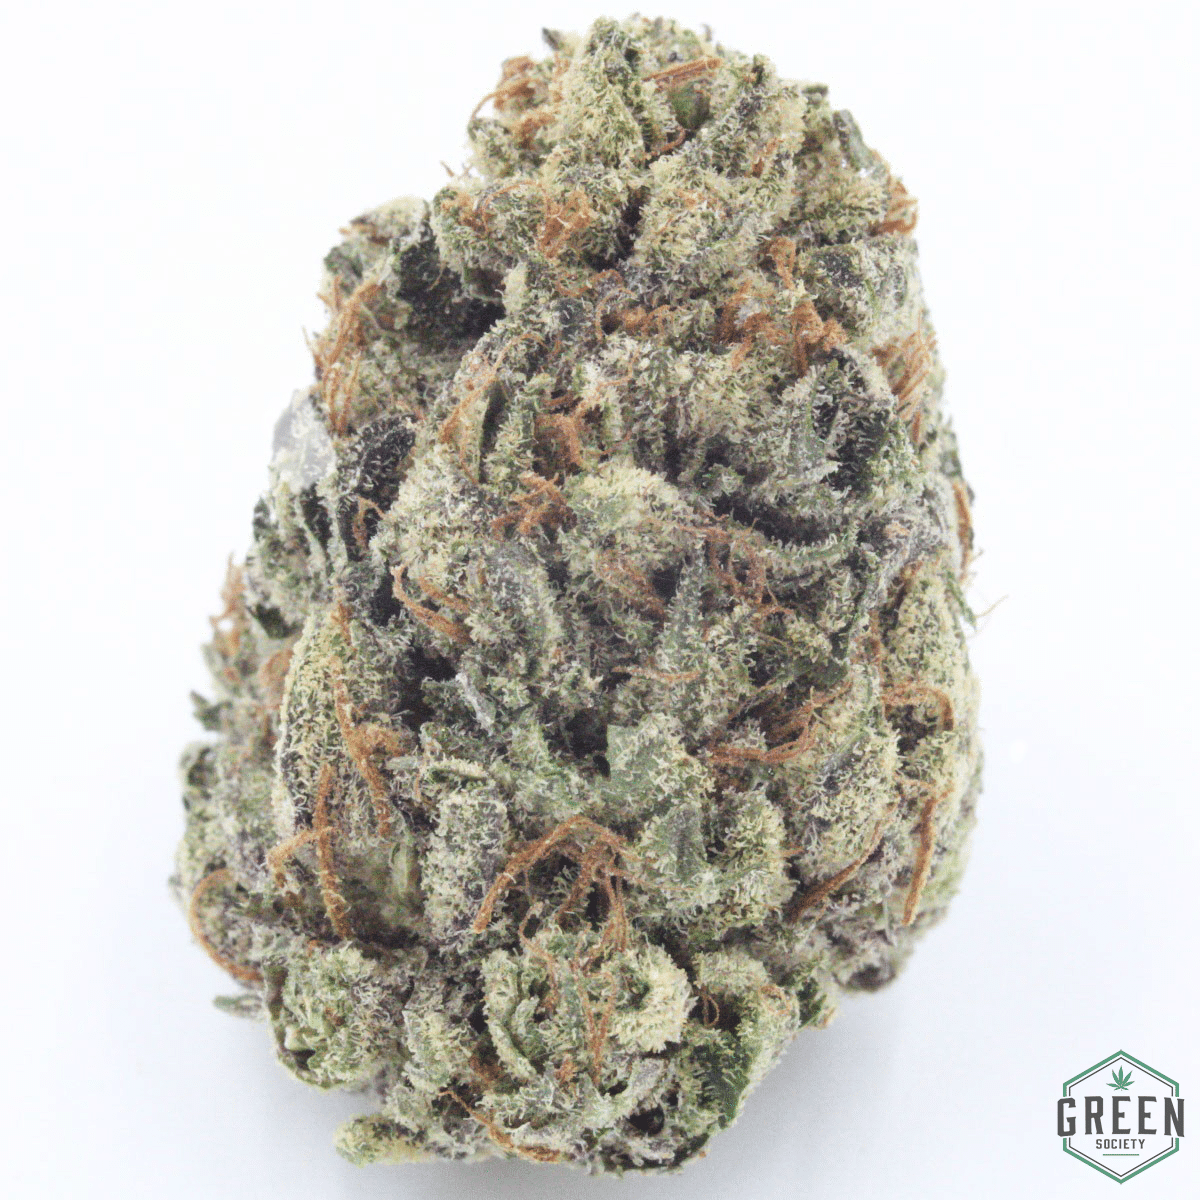 Death Bubba Kush by Green Society - Image © 2018 Green Society. All Rights Reserved.